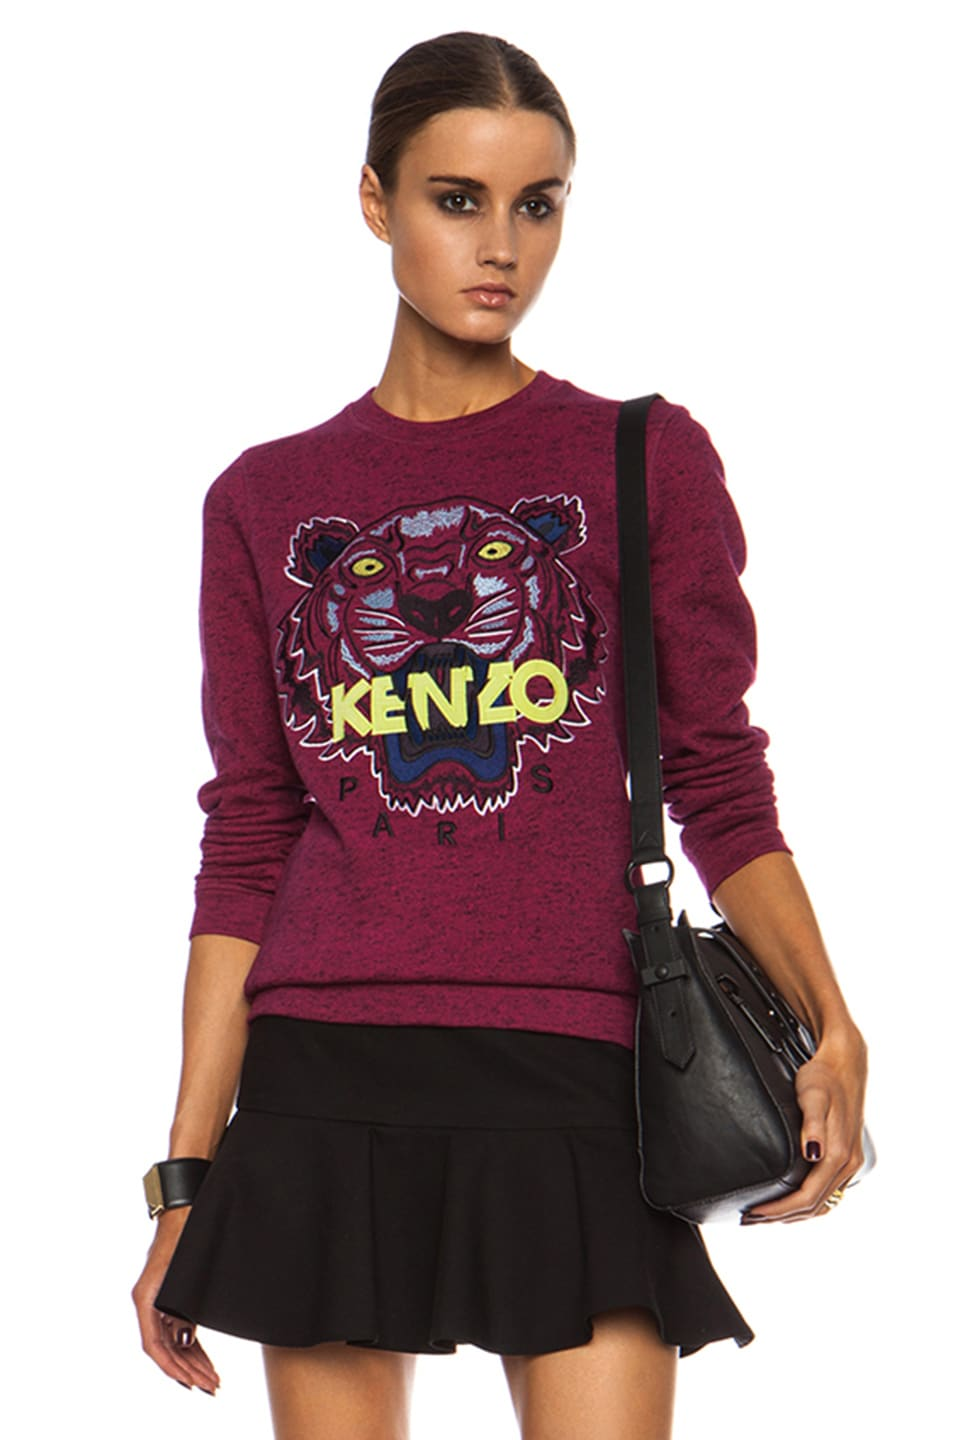 8f5fc2cf4f3 Image 1 of Kenzo Tiger Cotton Sweatshirt in Deep Fuschia